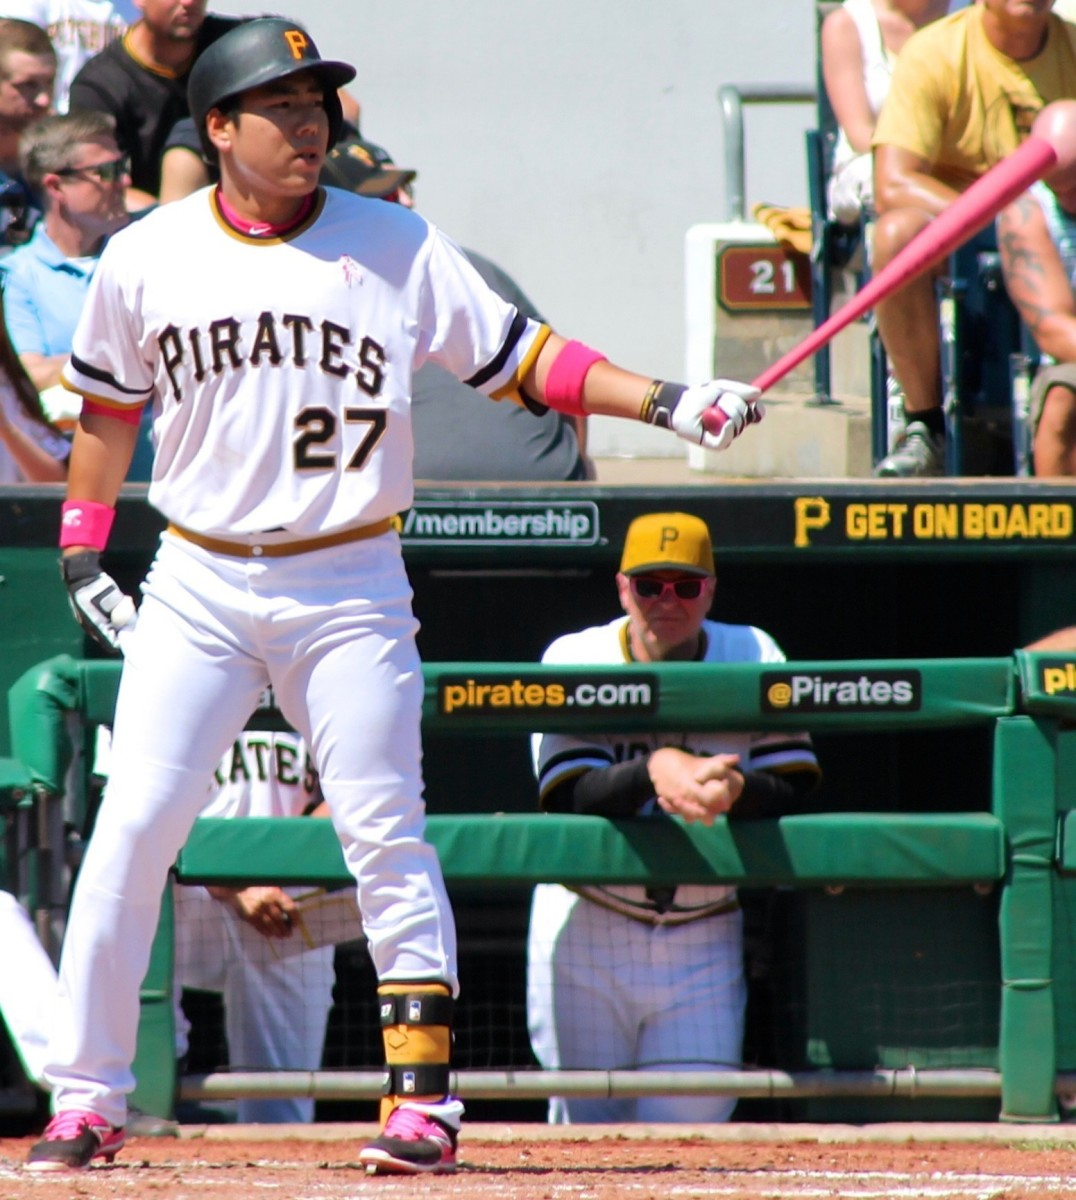 Though off-the-field problems plagued Jung-Ho Kang, he is still one of the top players from Korea to play in the Majors.